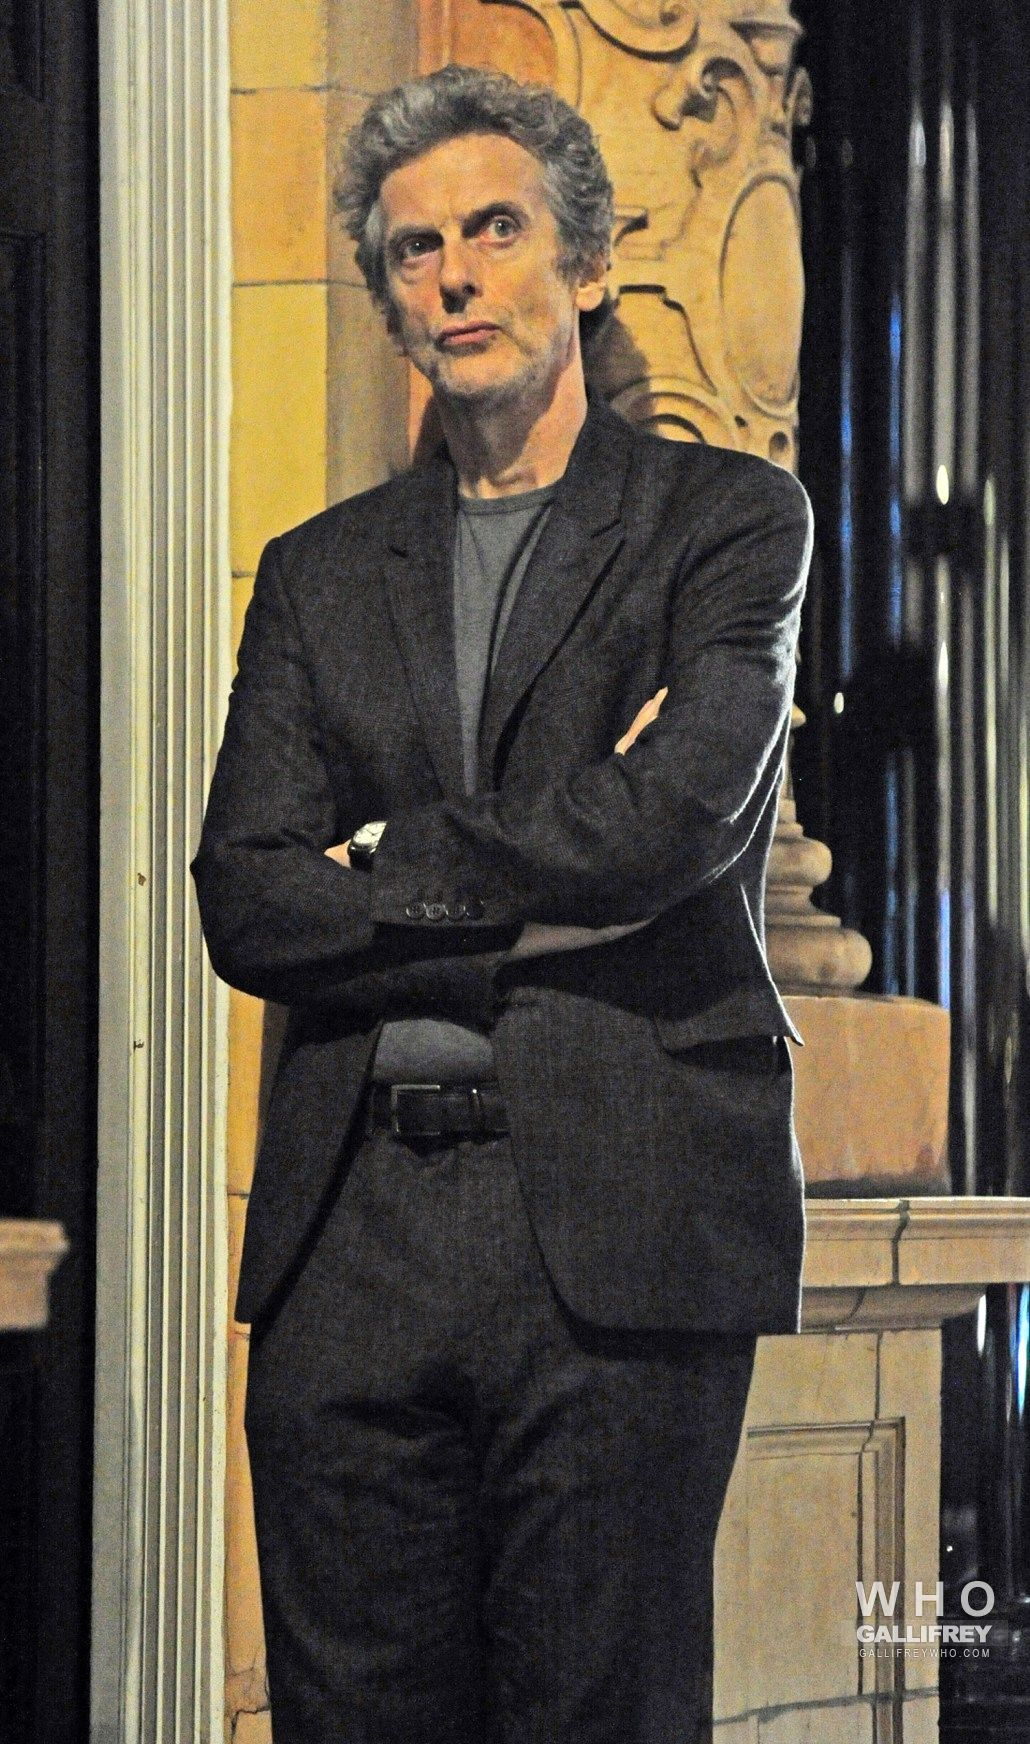 Many of my followers , including me, are dealing with January blistering cold, so I thought…hmm how about some PCap to warm us up. Are we warm yet? I'm getting there.